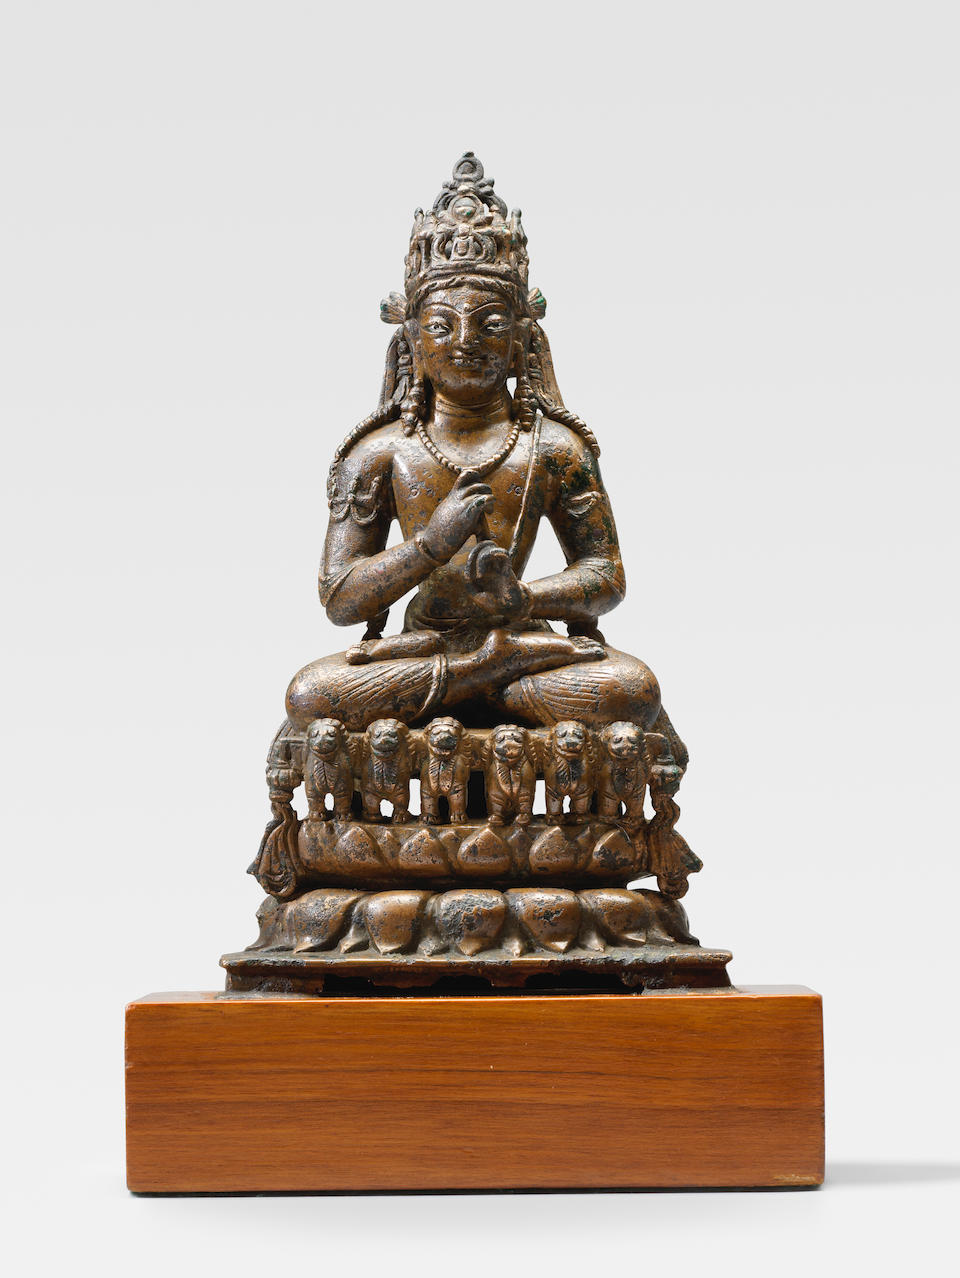 A SILVER INLAID COPPER ALLOY FIGURE OF VAIROCANA SWAT VALLEY, 8TH/9TH CENTURY